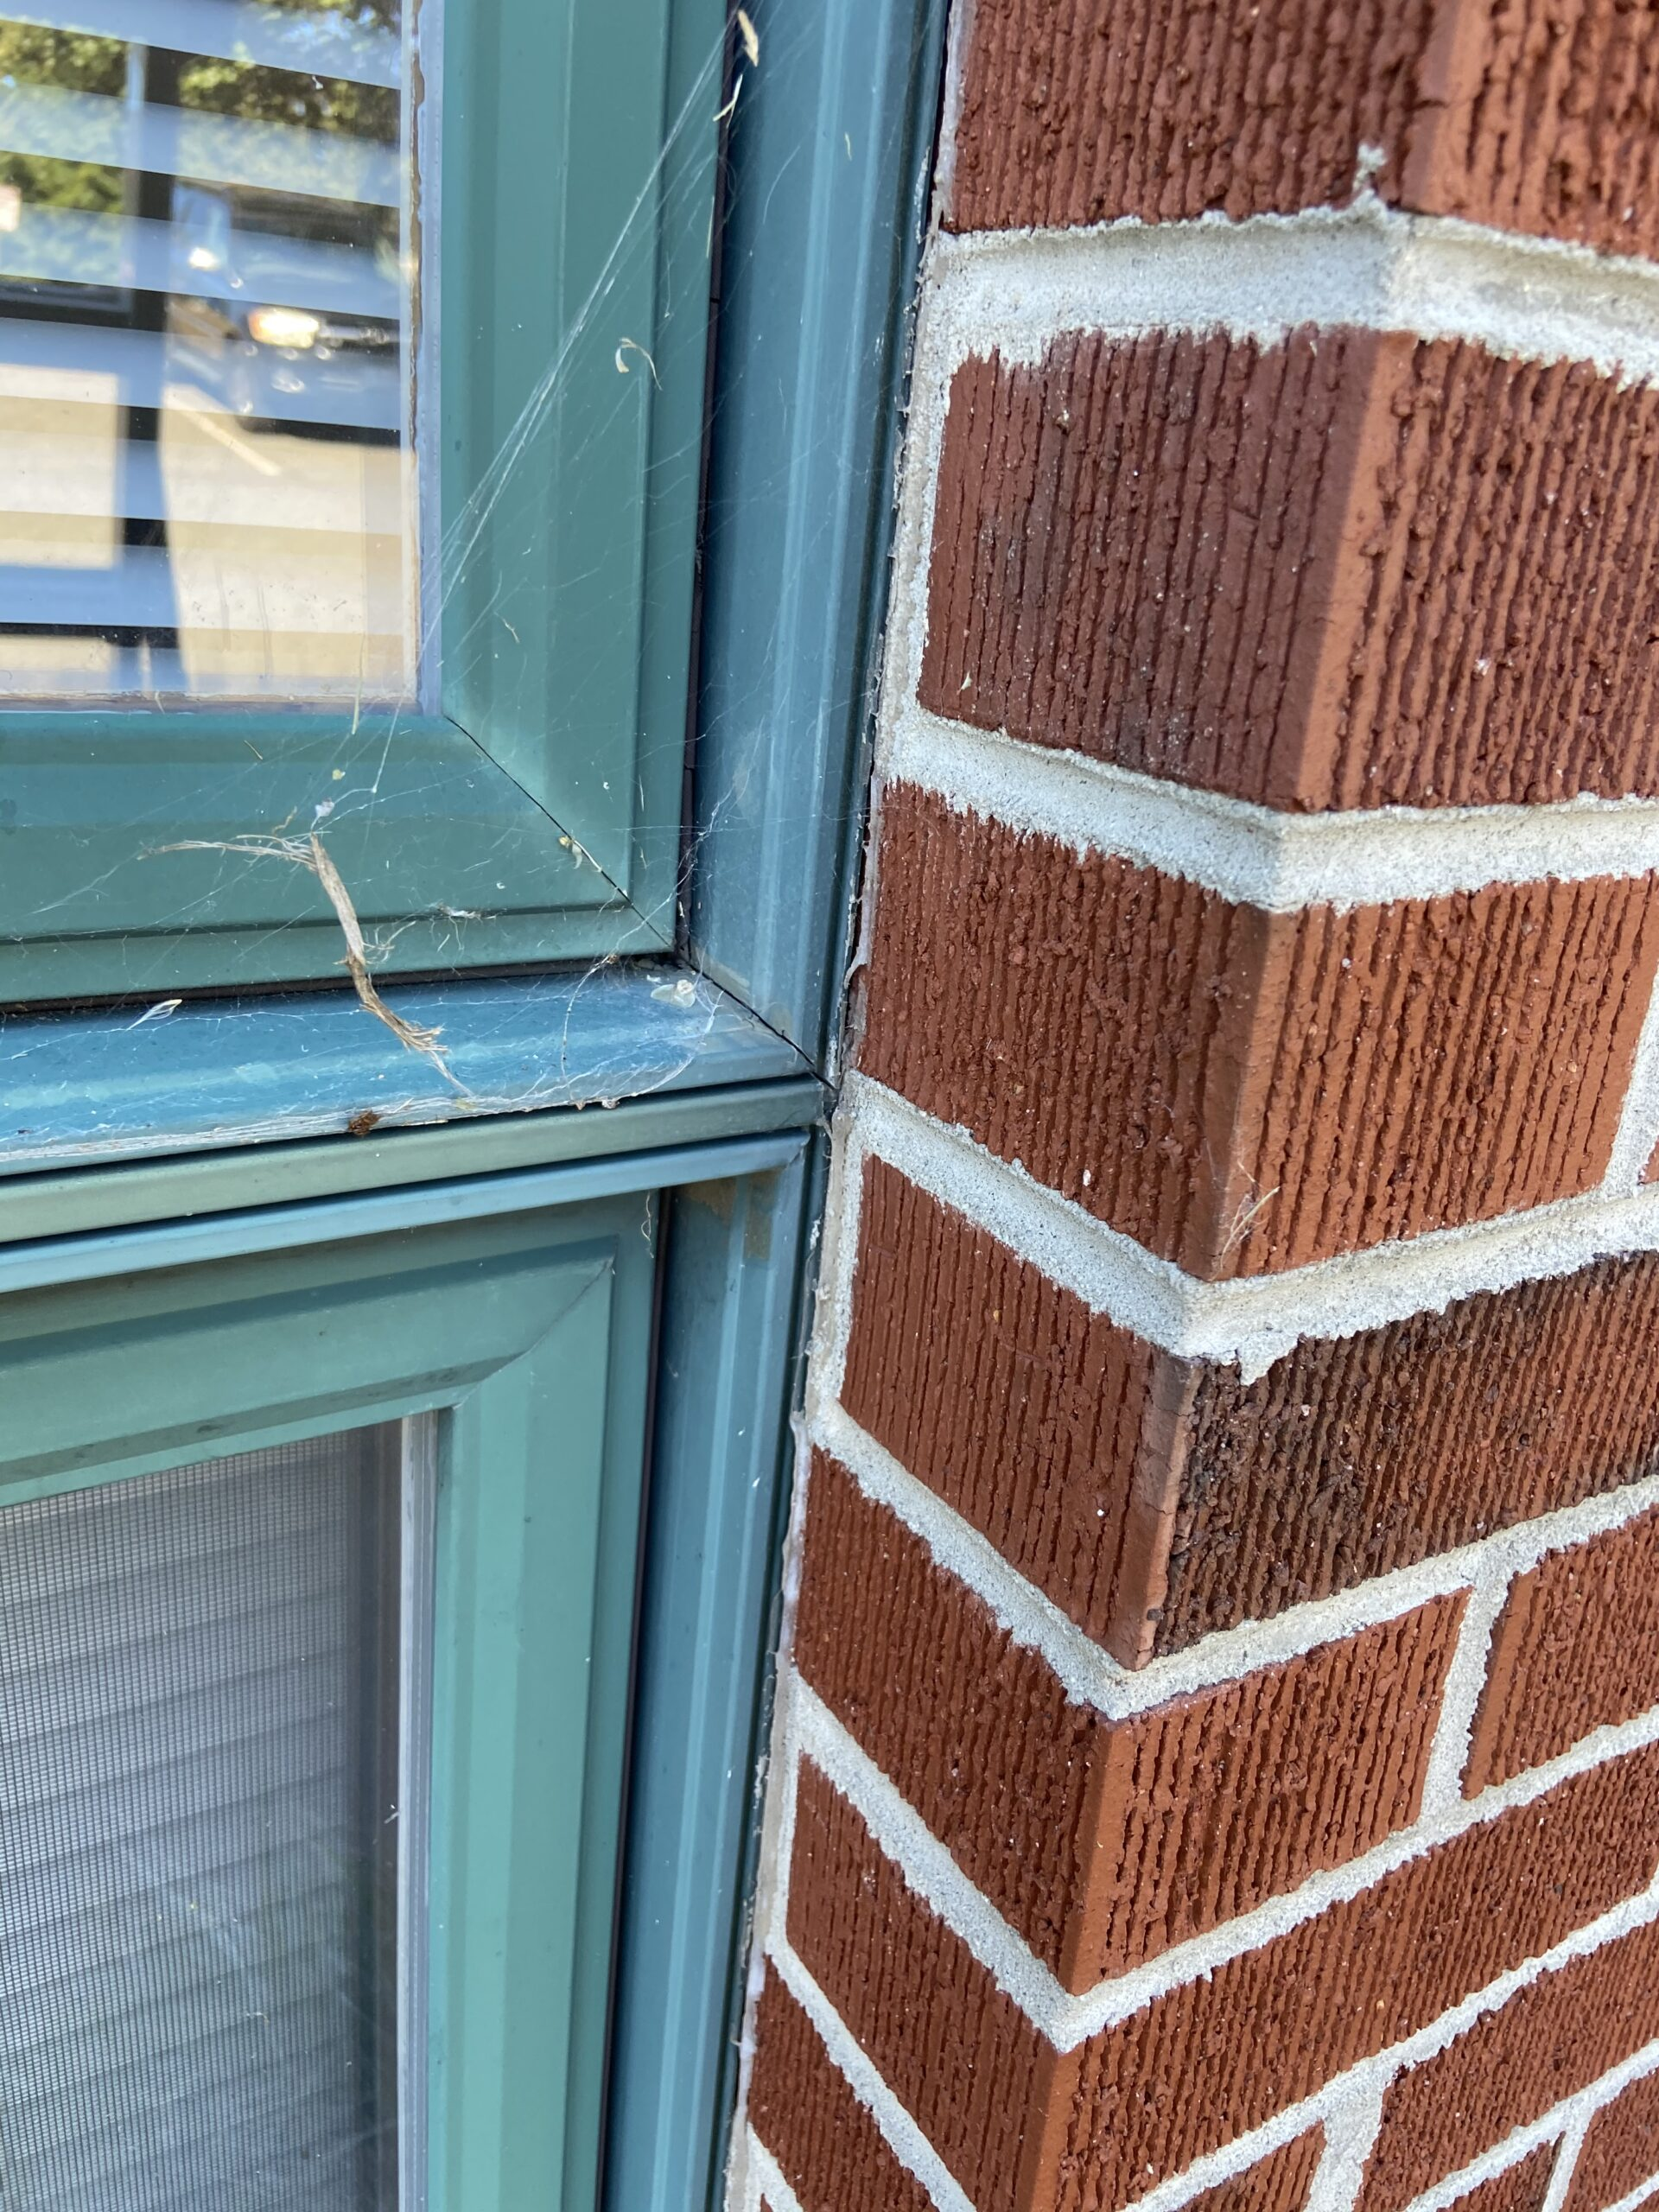 This is a picture of cracking between Brick and a window this needs to be caulked